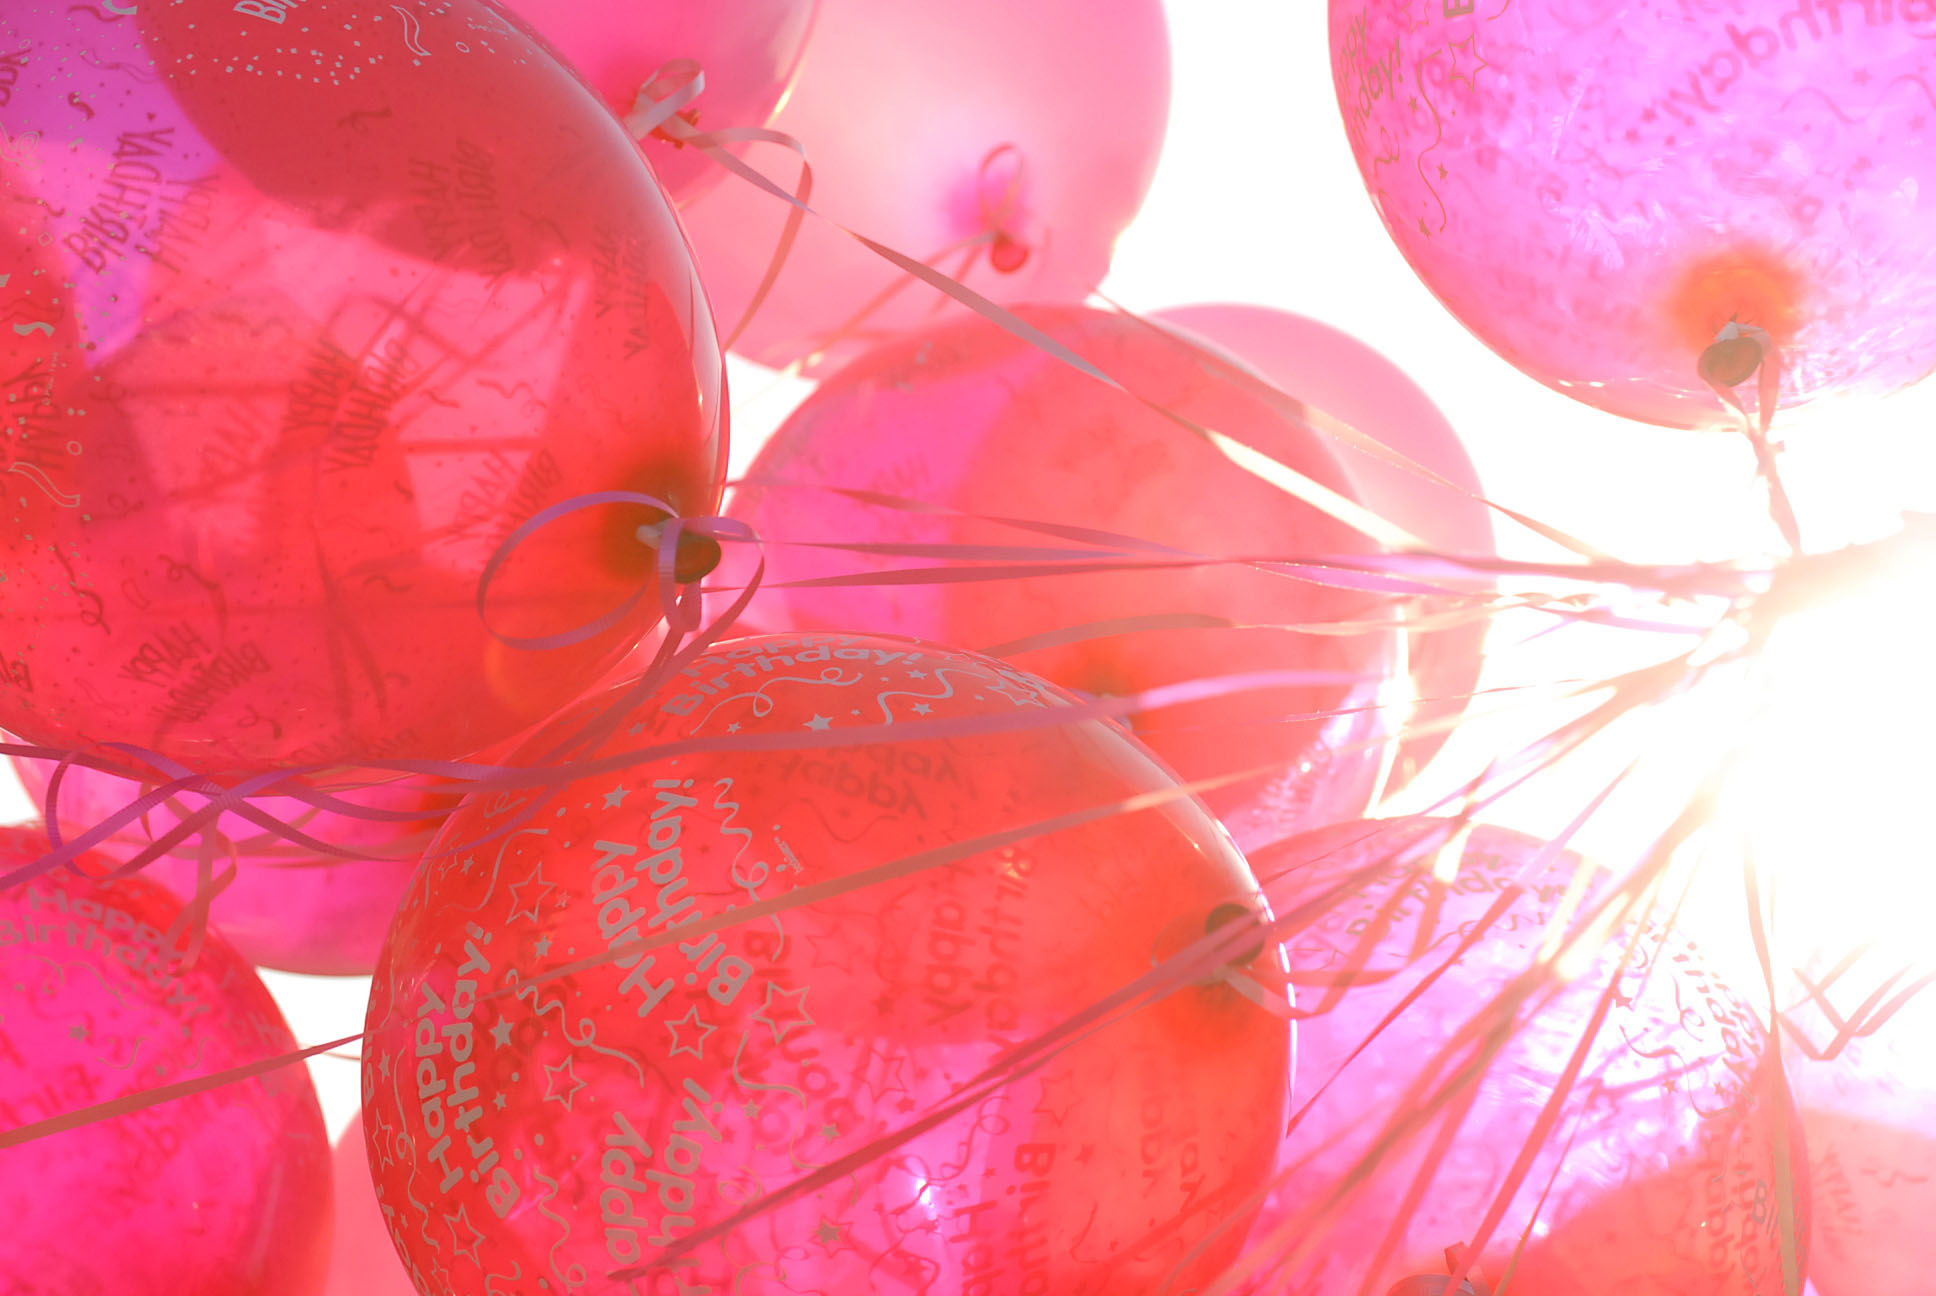 pink balloons | Flickr - Photo Sharing!